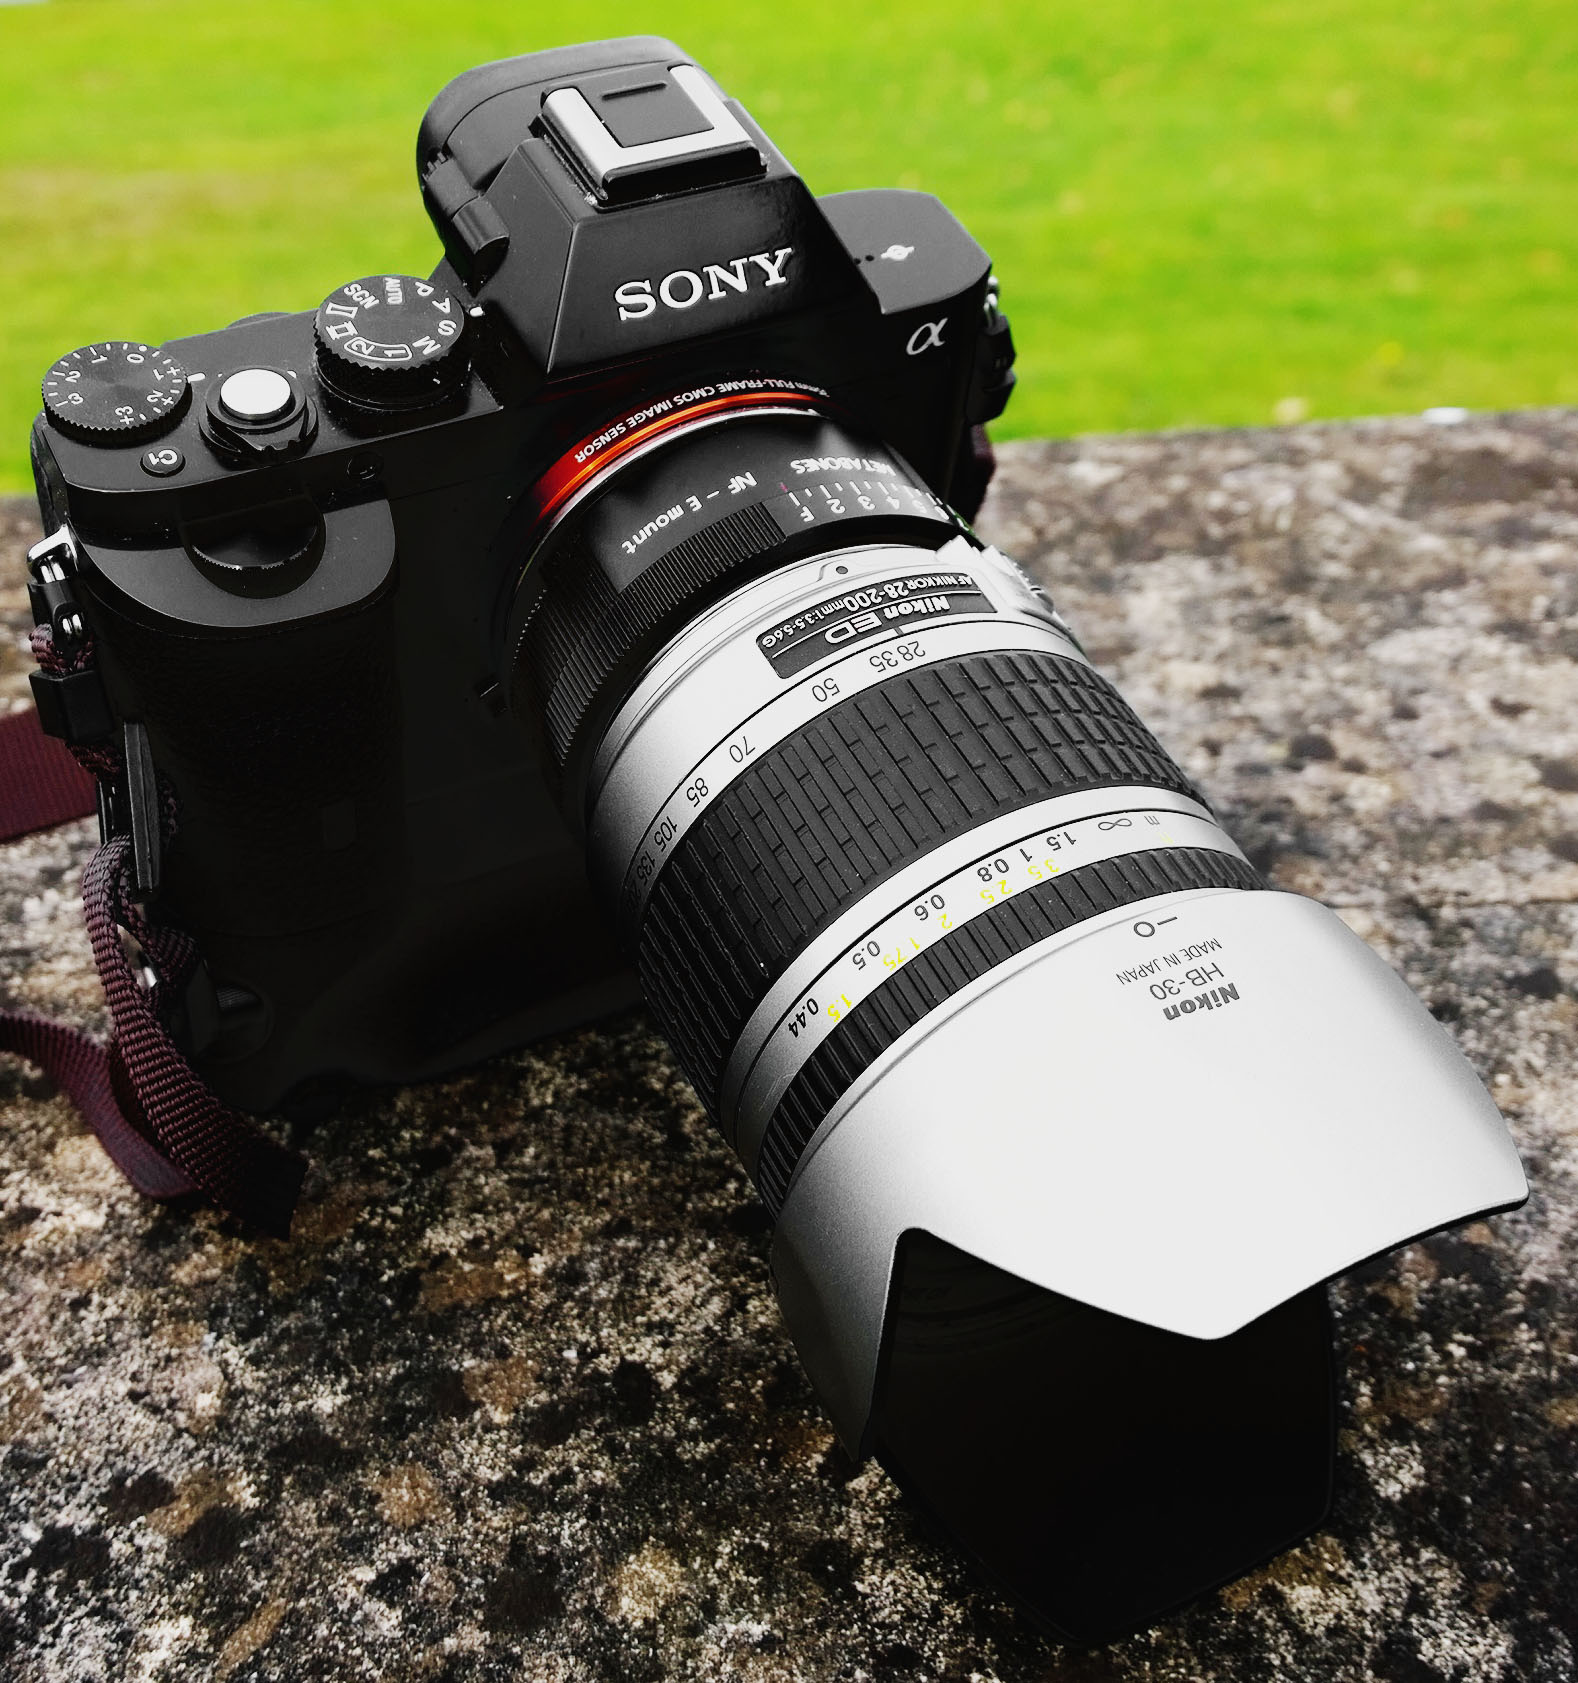 Sony A7r / A7s Nikon 28-200mm f/3.5-5.6 G Zoom Lens Metabones Nikon > Sony e-mount adapter